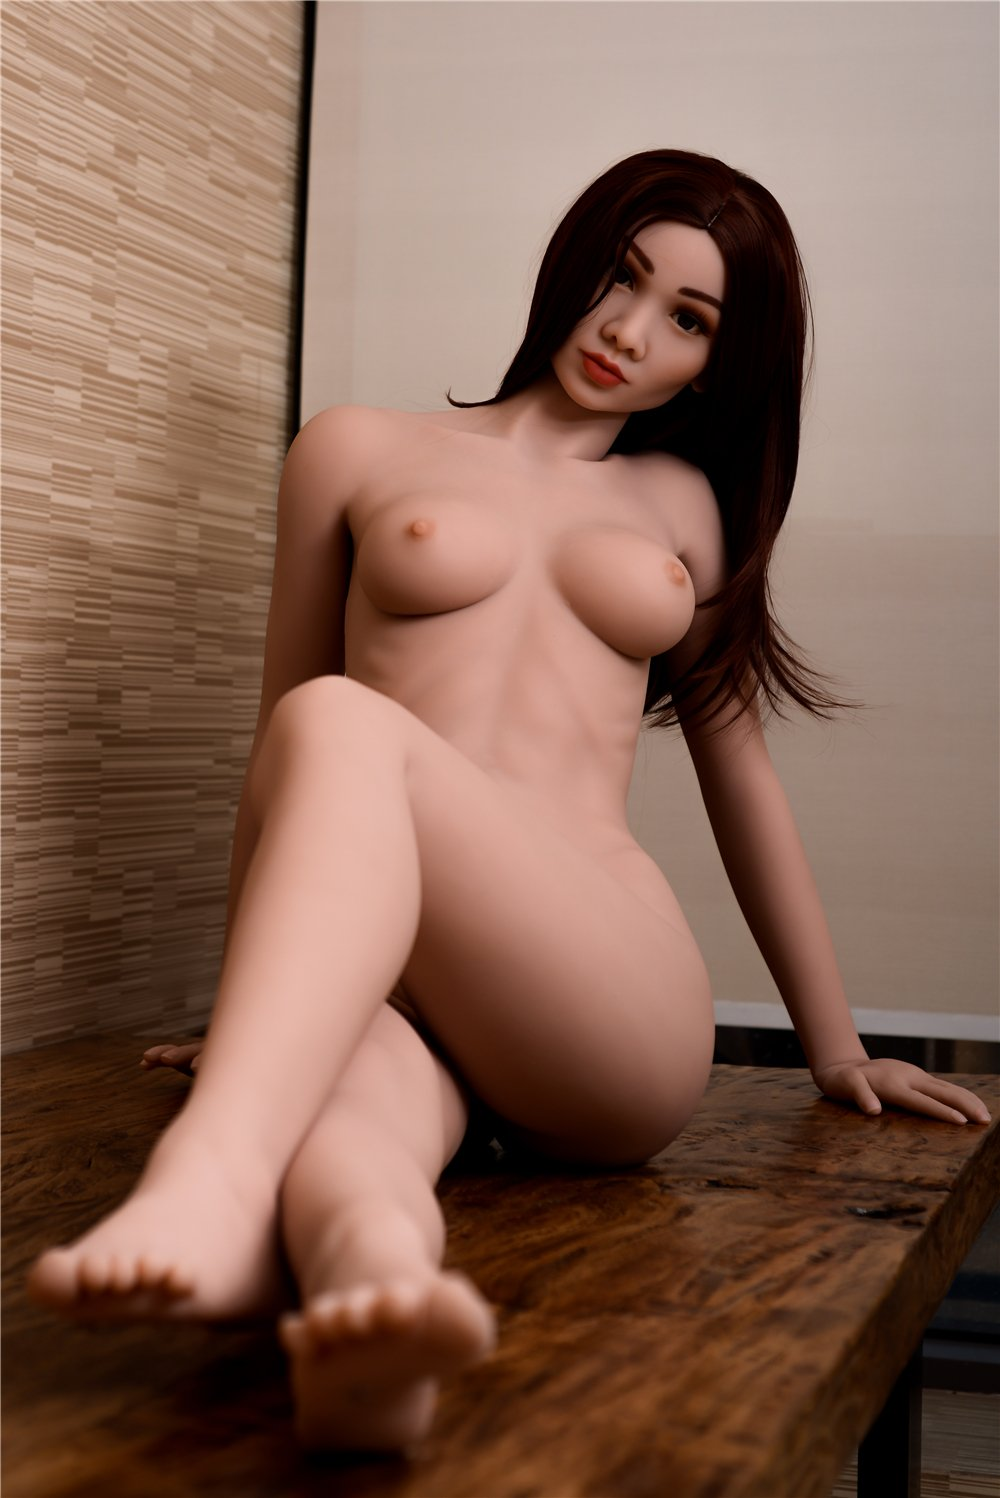 sharrie 168cm brown hair medium tits skinny red hair flat chested tpe asian sex doll(5)